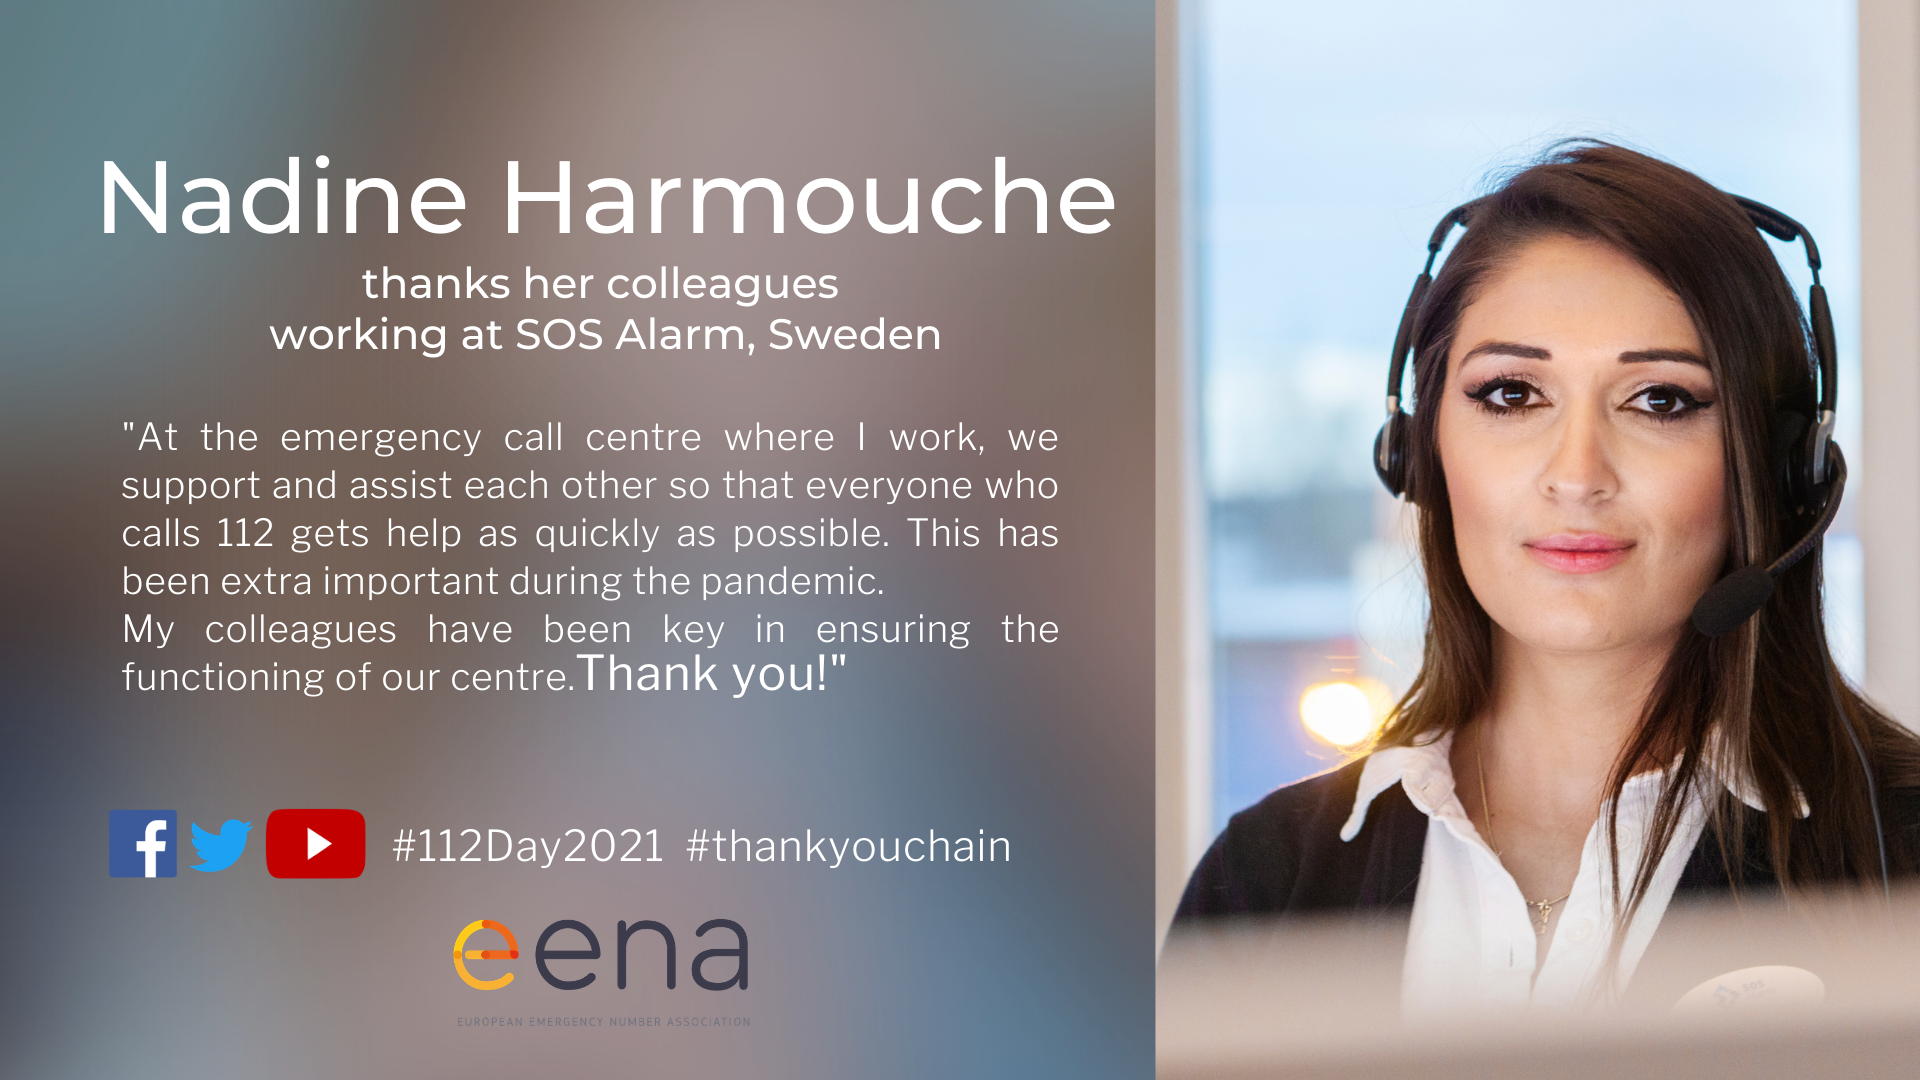 Nadine Harmouche thanks her colleagues at SOS Alarm, Sweden